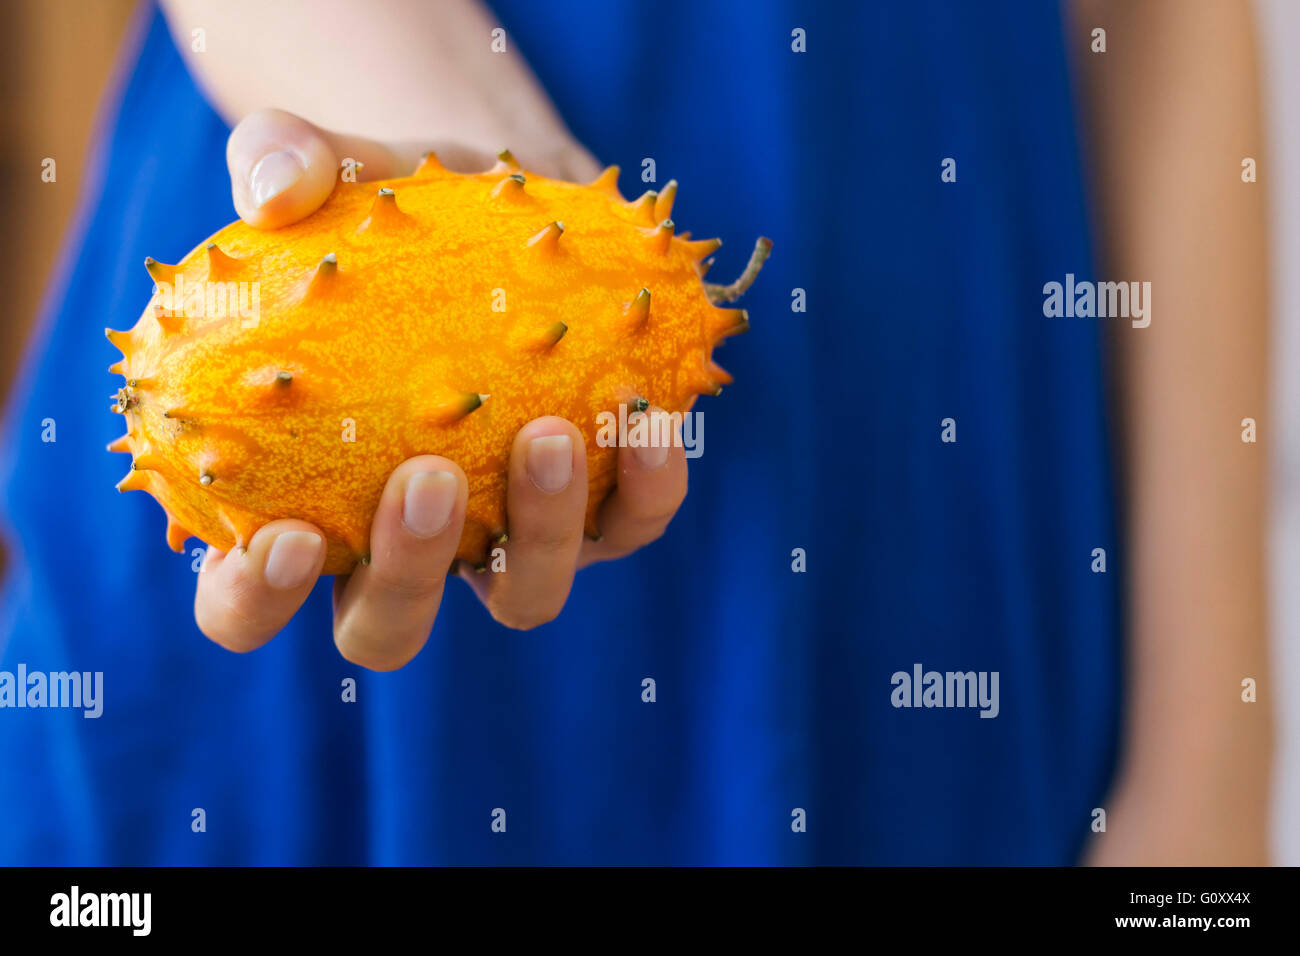 Woman holding an African Horned Melon - Stock Image